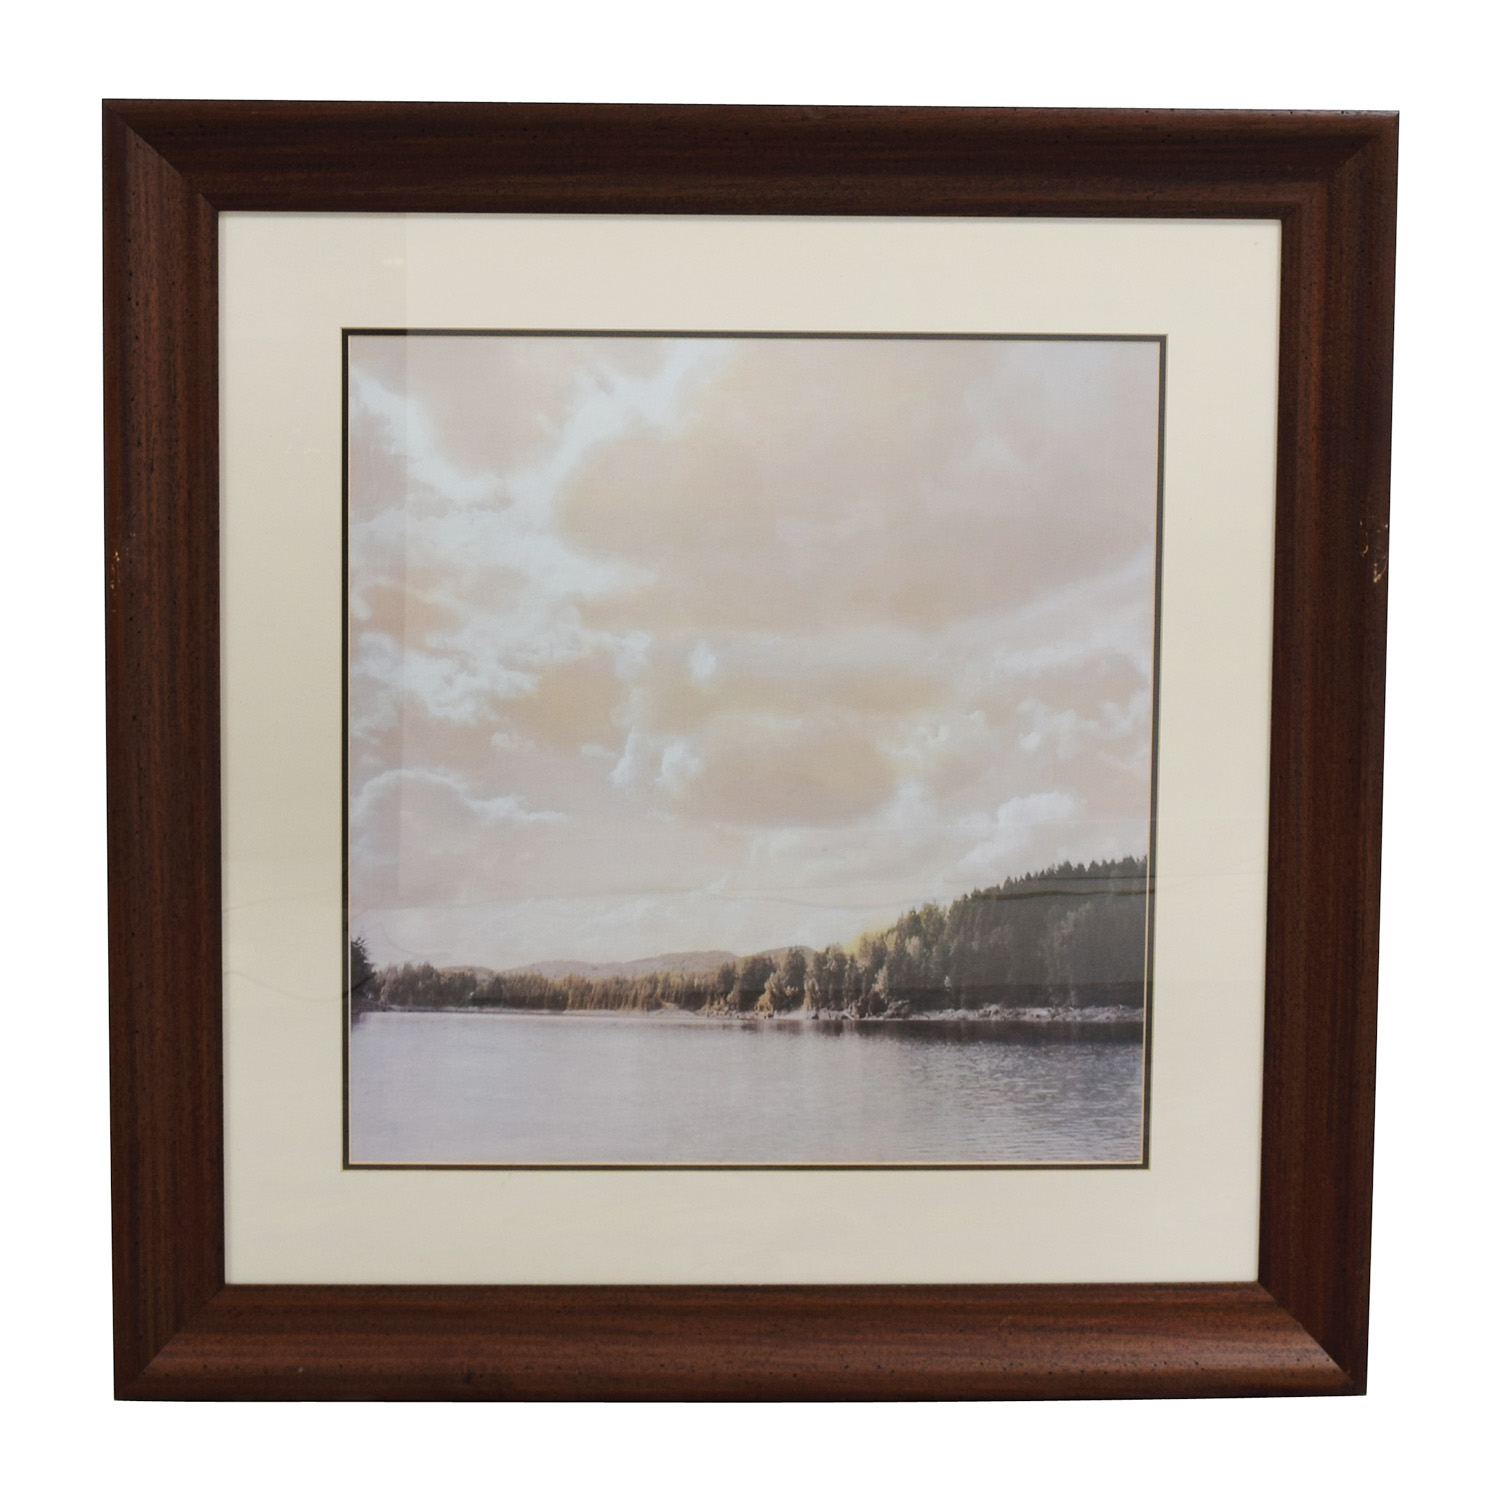 Scenic Picture of Lake in Wood Frame nj